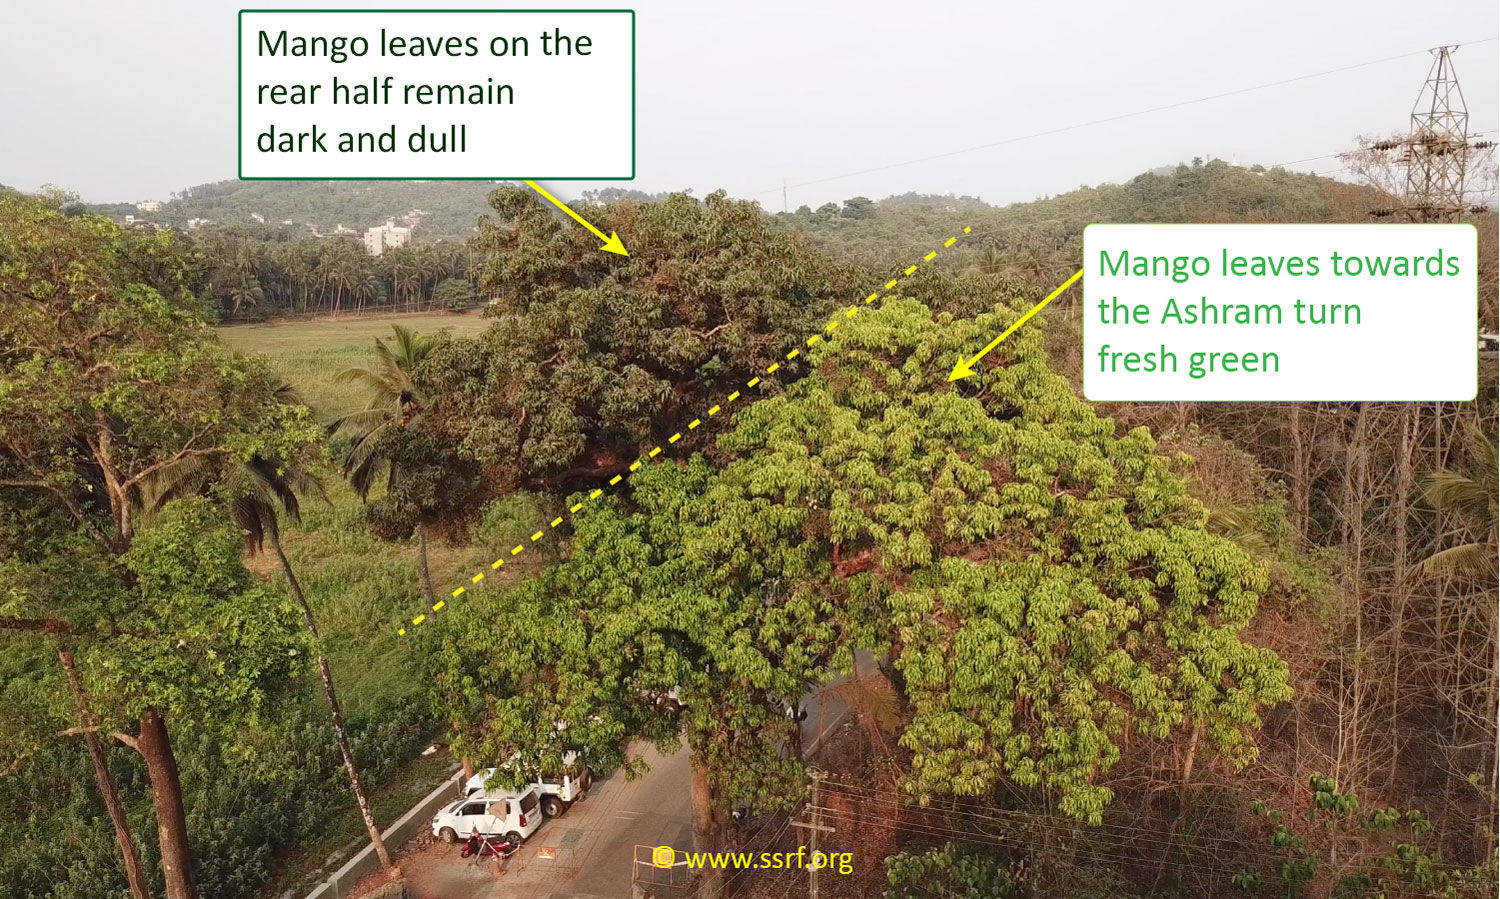 Two halves of a mango tree behaving differently